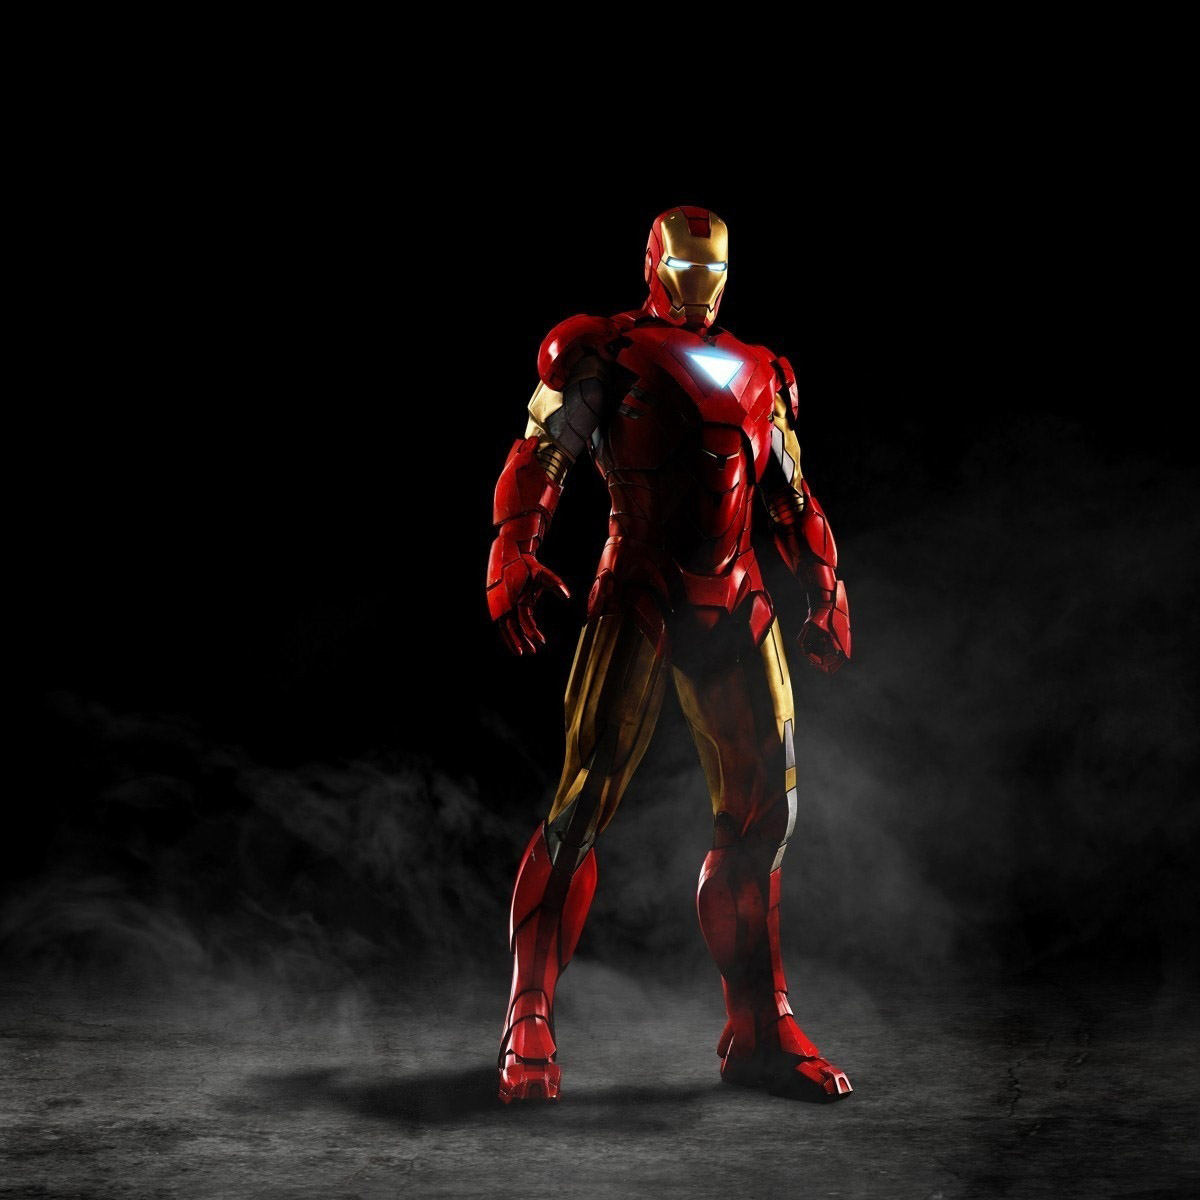 ipad wallpaper hd iron manpetite-soumiselylye